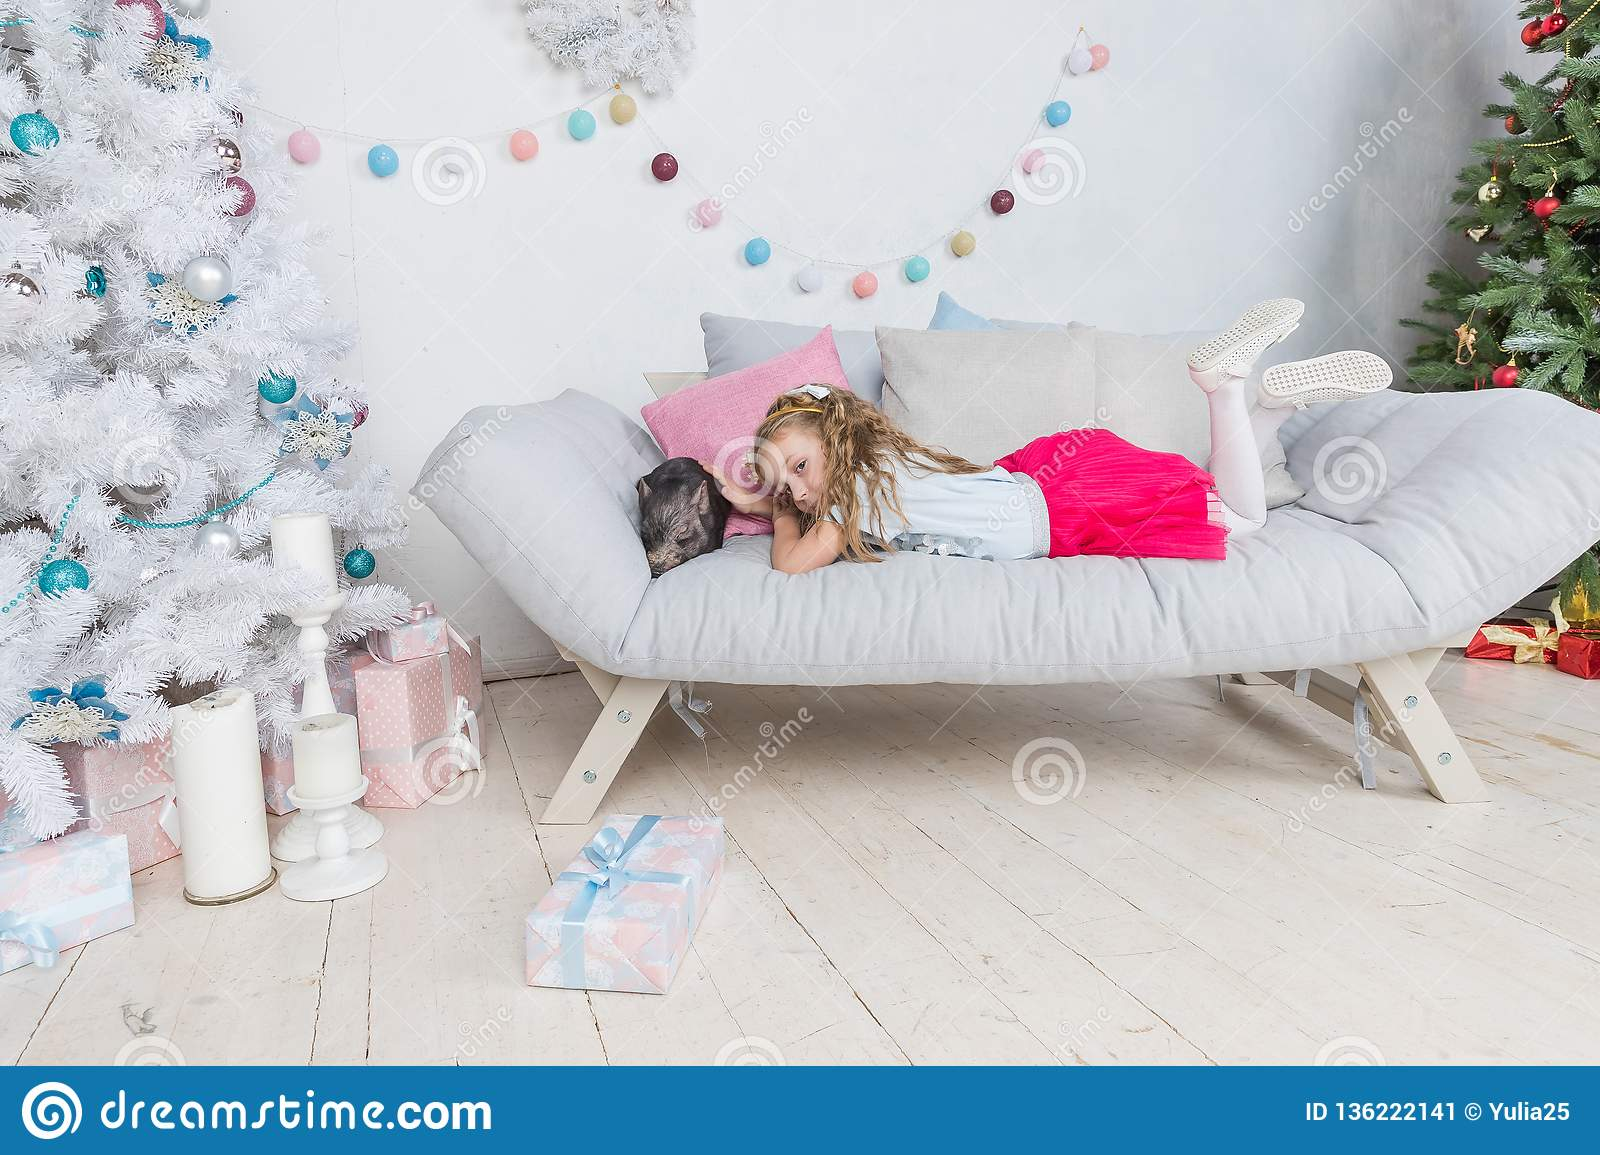 Chinese New Year 2019. Lucky Pig. The year of the pig. Cute blonde girl with baby pig celebrating Chinese New Year. 2019